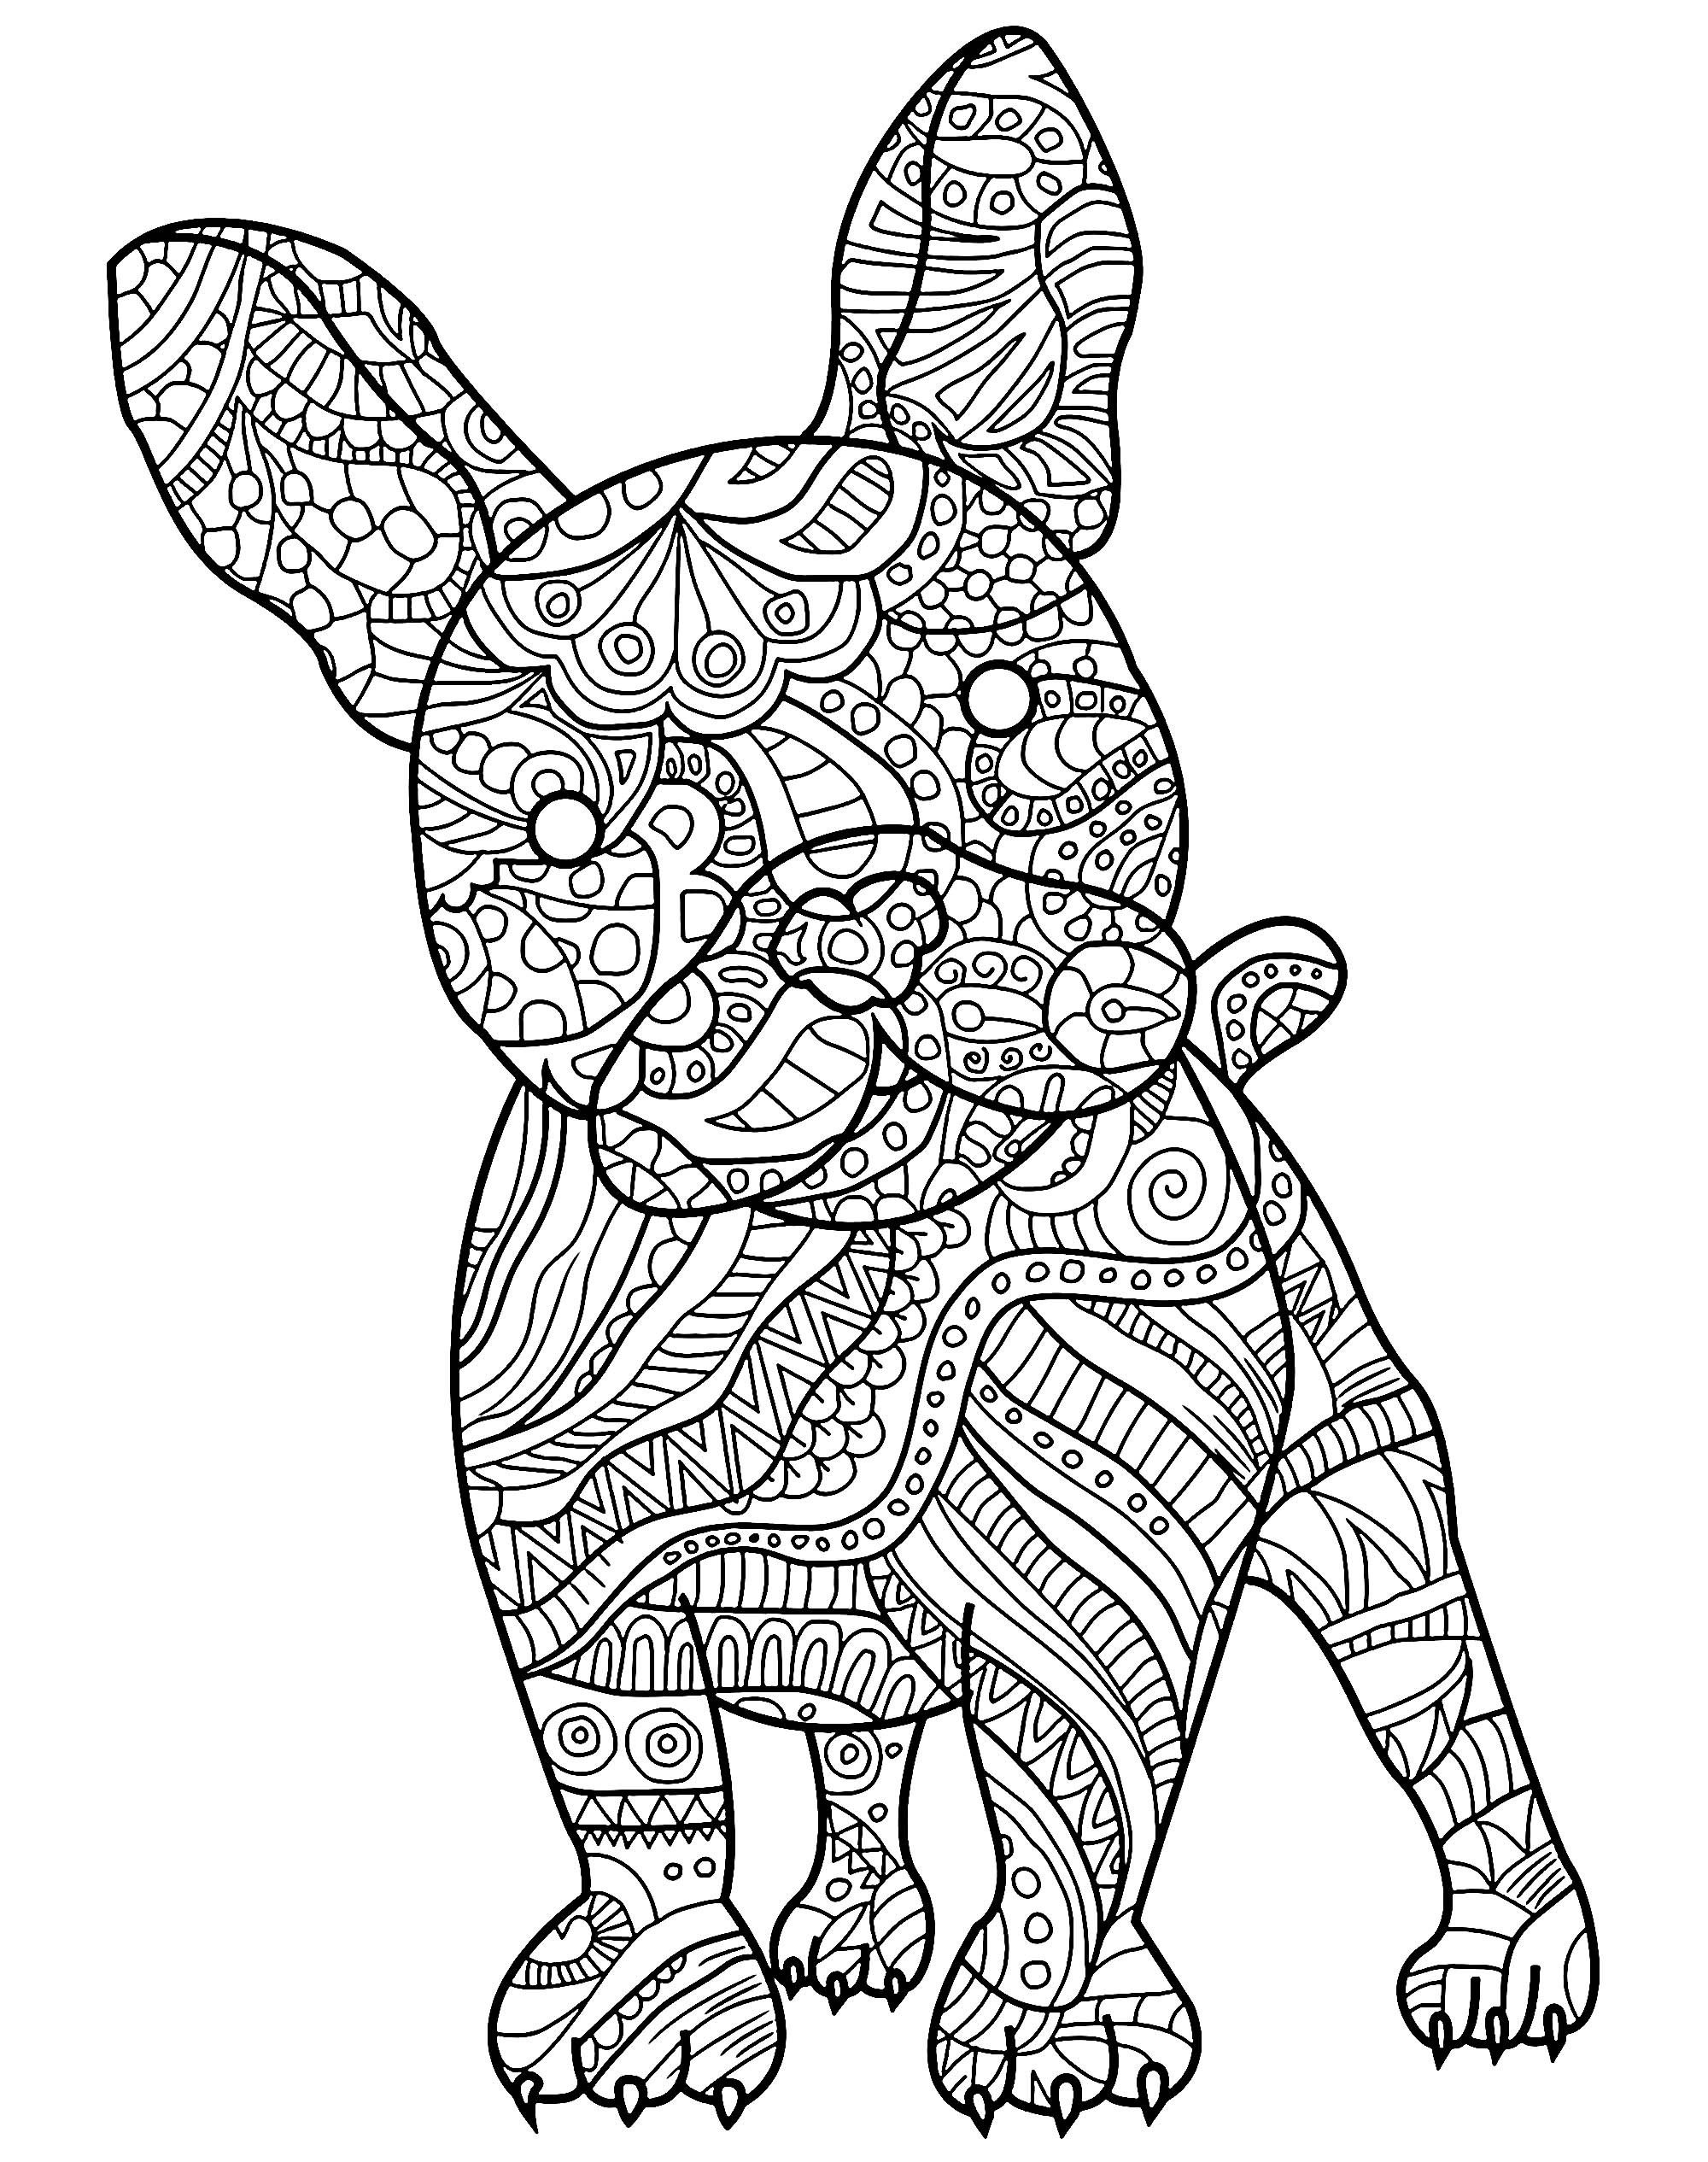 dog color sheets dog to download for free dogs kids coloring pages sheets color dog